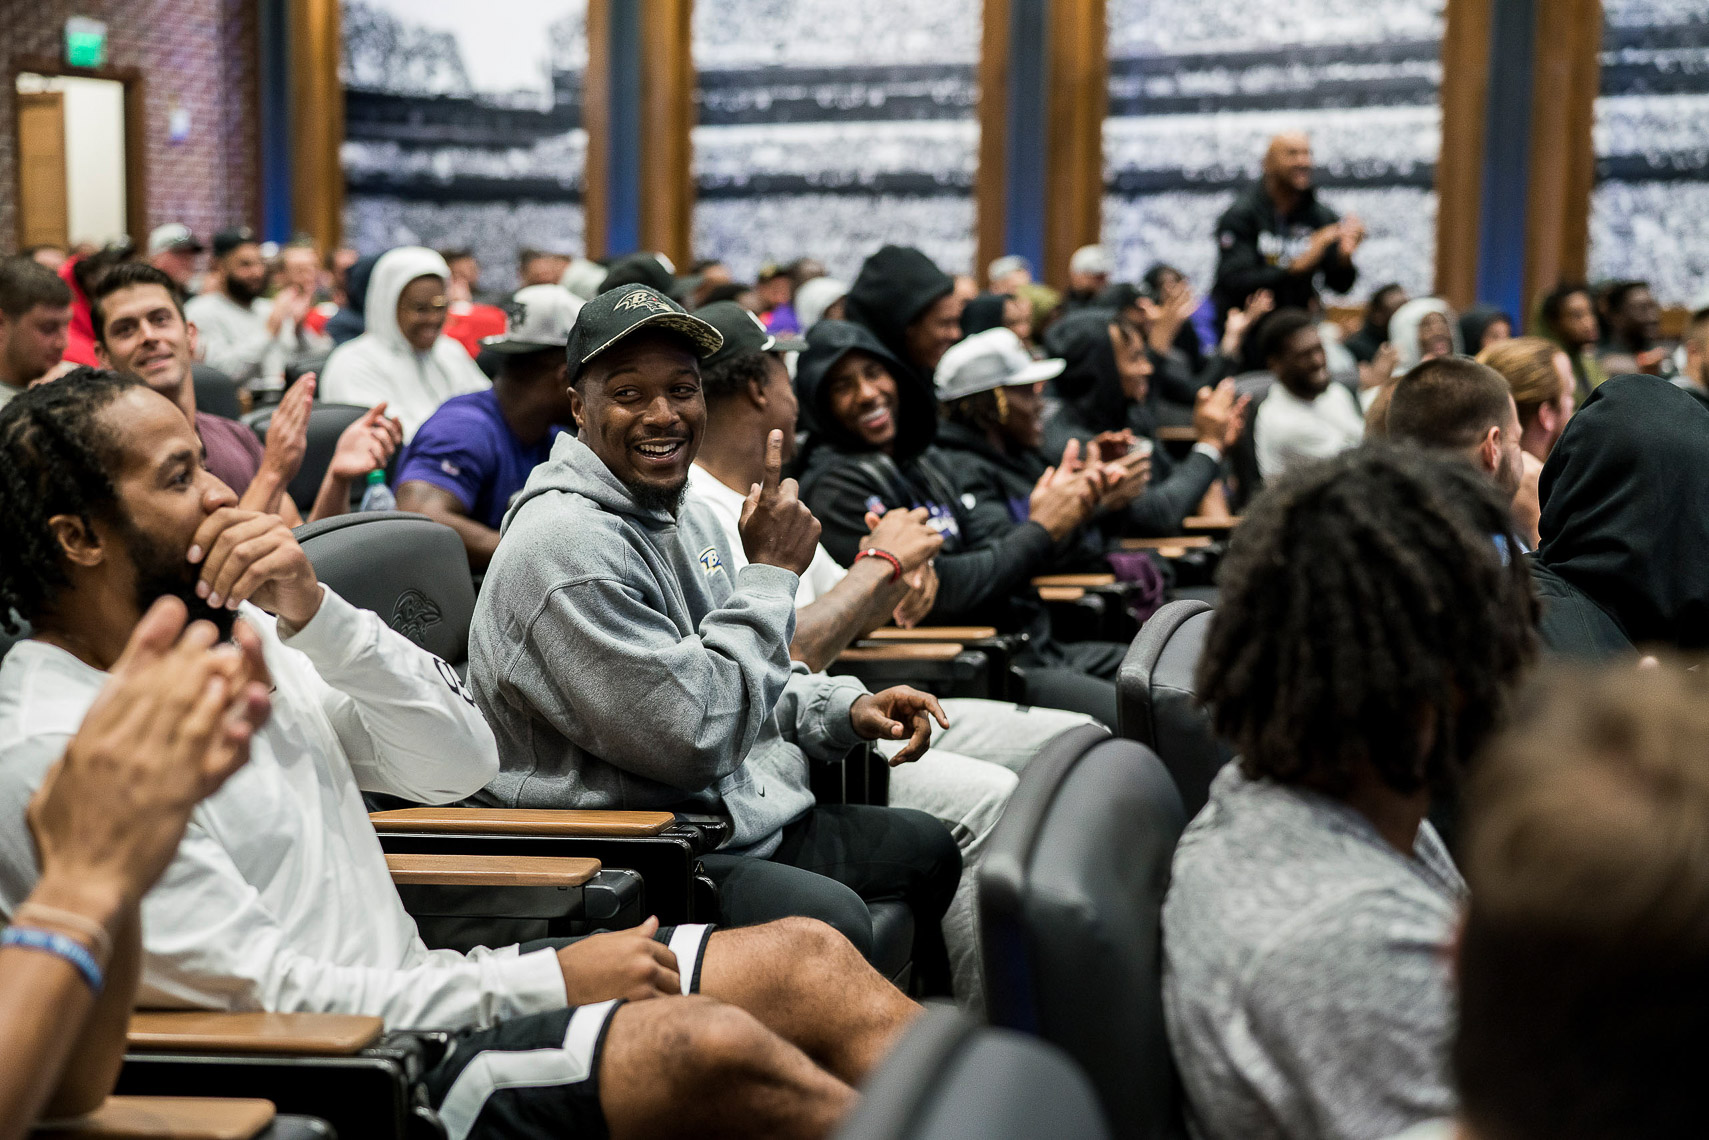 A day in the life of NFL training camp documentary story Baltimore photojournalist Shawn Hubbard